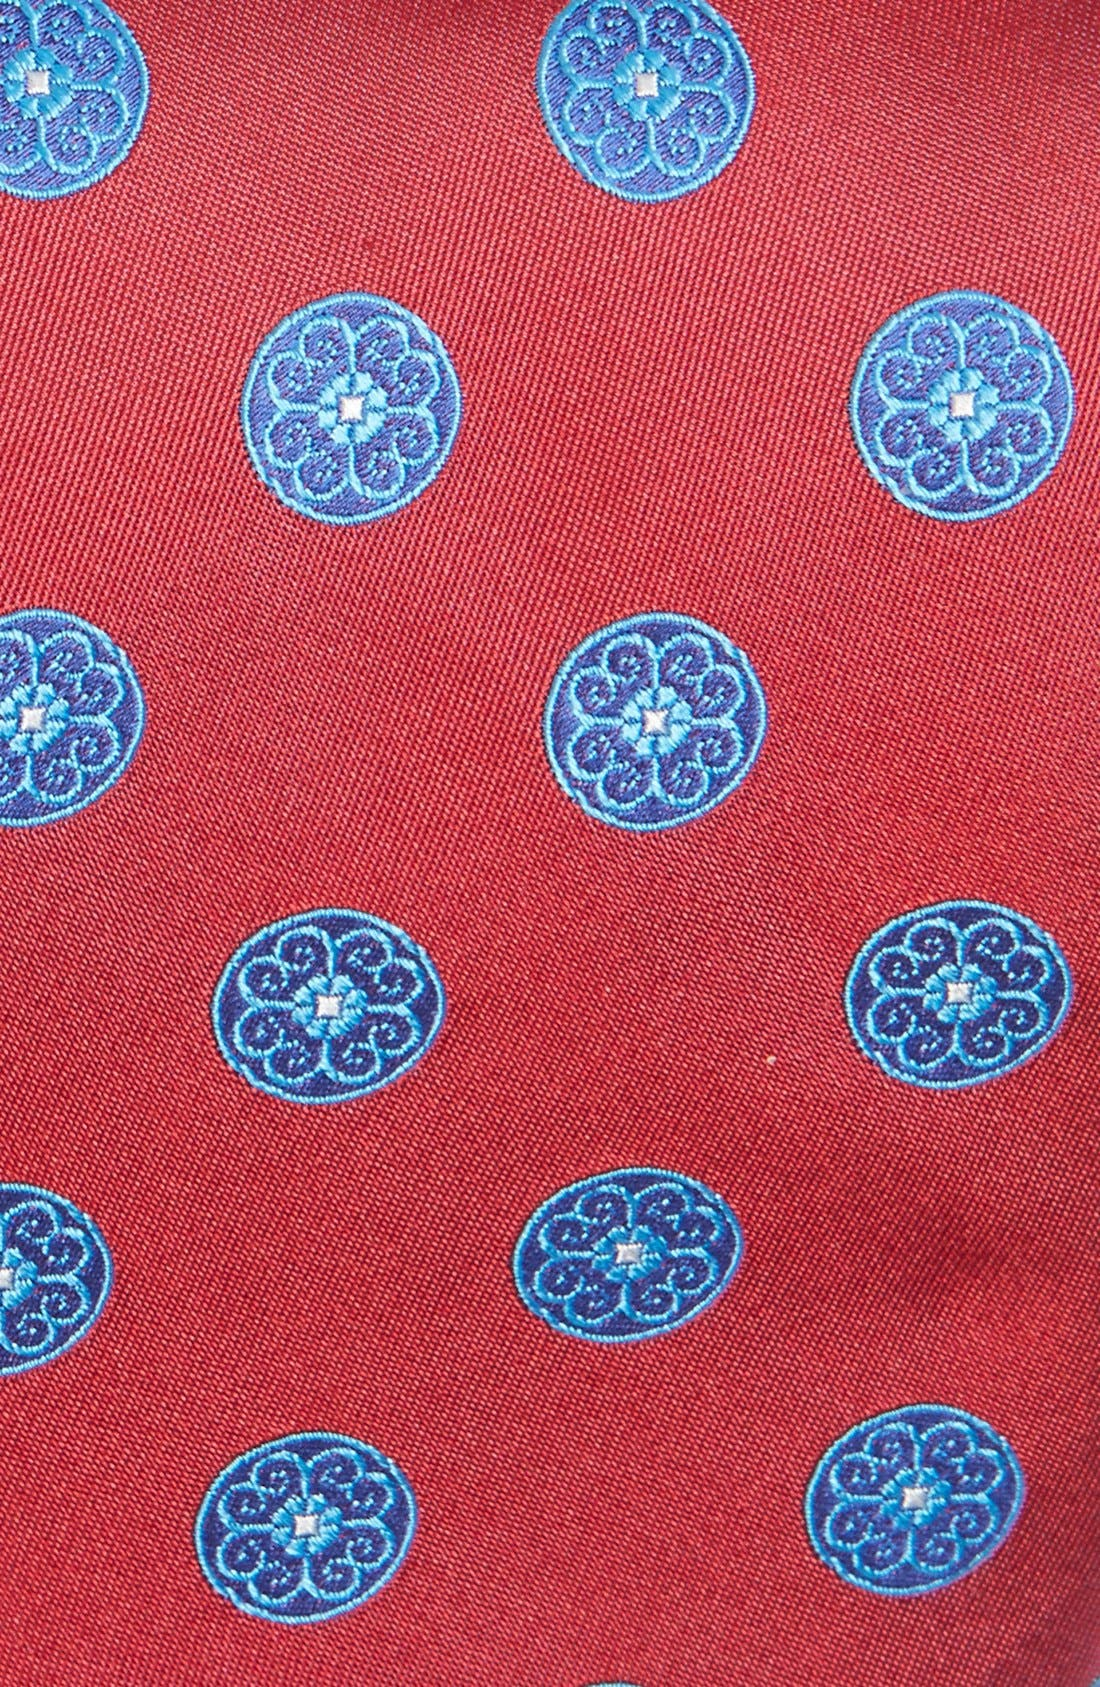 Medallion Woven Silk Tie,                             Alternate thumbnail 12, color,